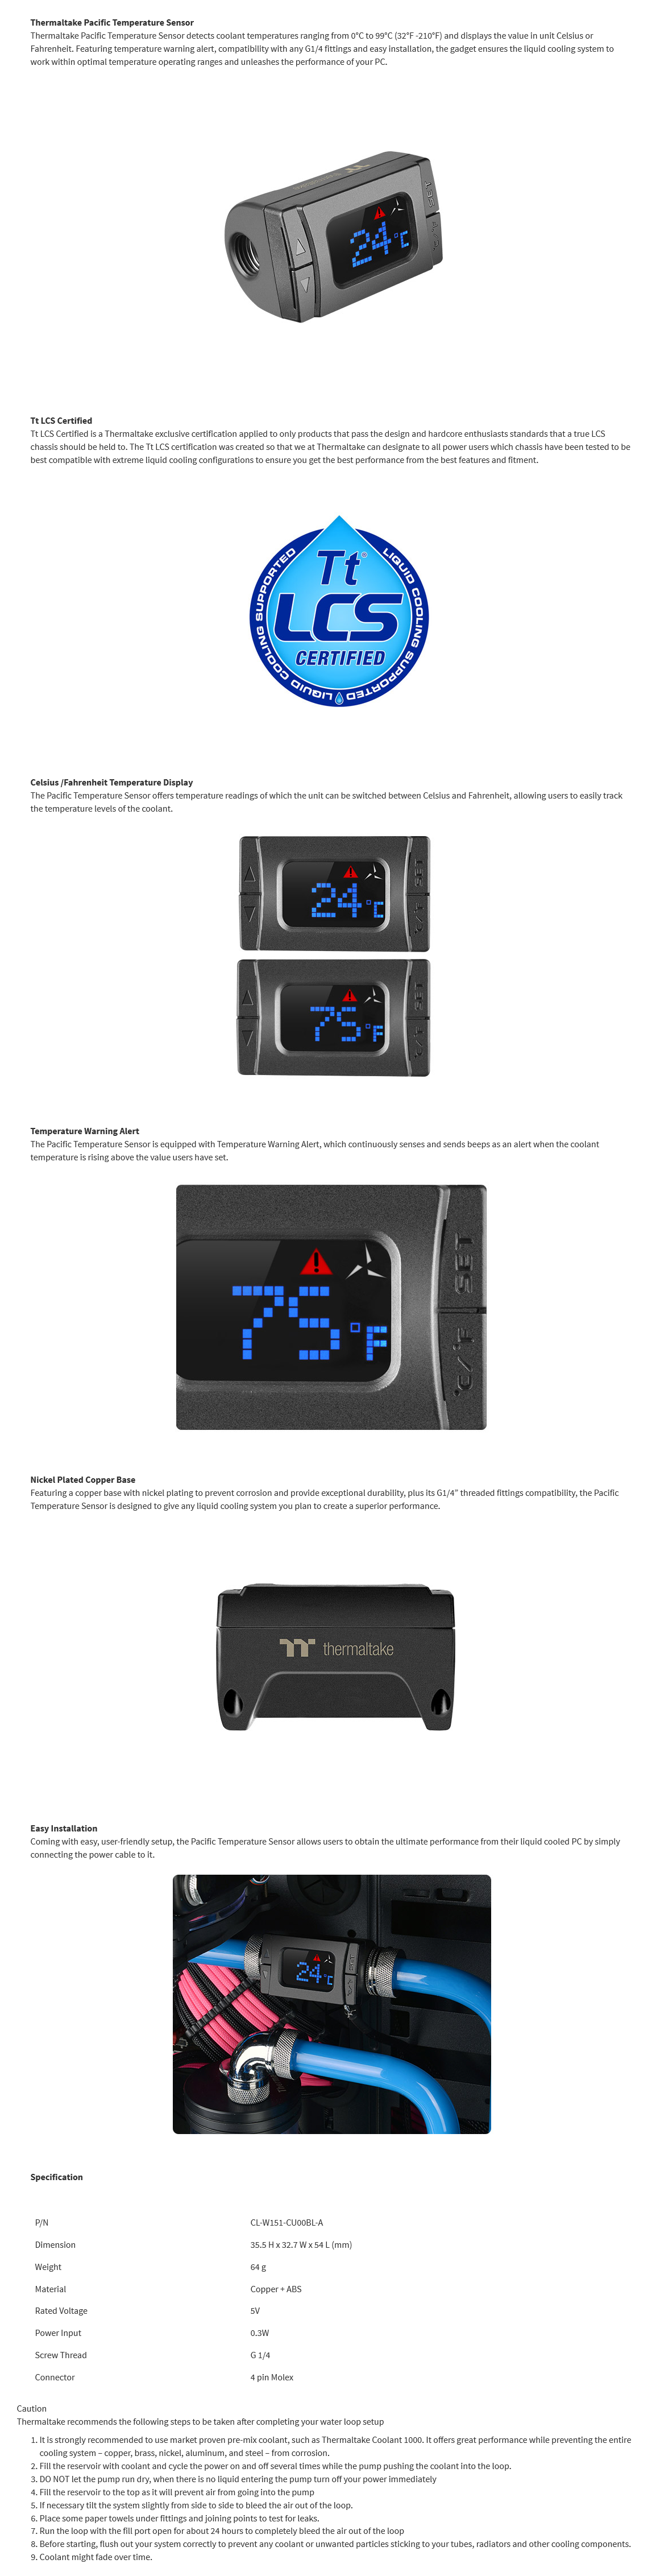 "A large marketing image providing additional information about the product Thermaltake Pacific G1/4"" Inline Digital Temperature Sensor - Additional alt info not provided"